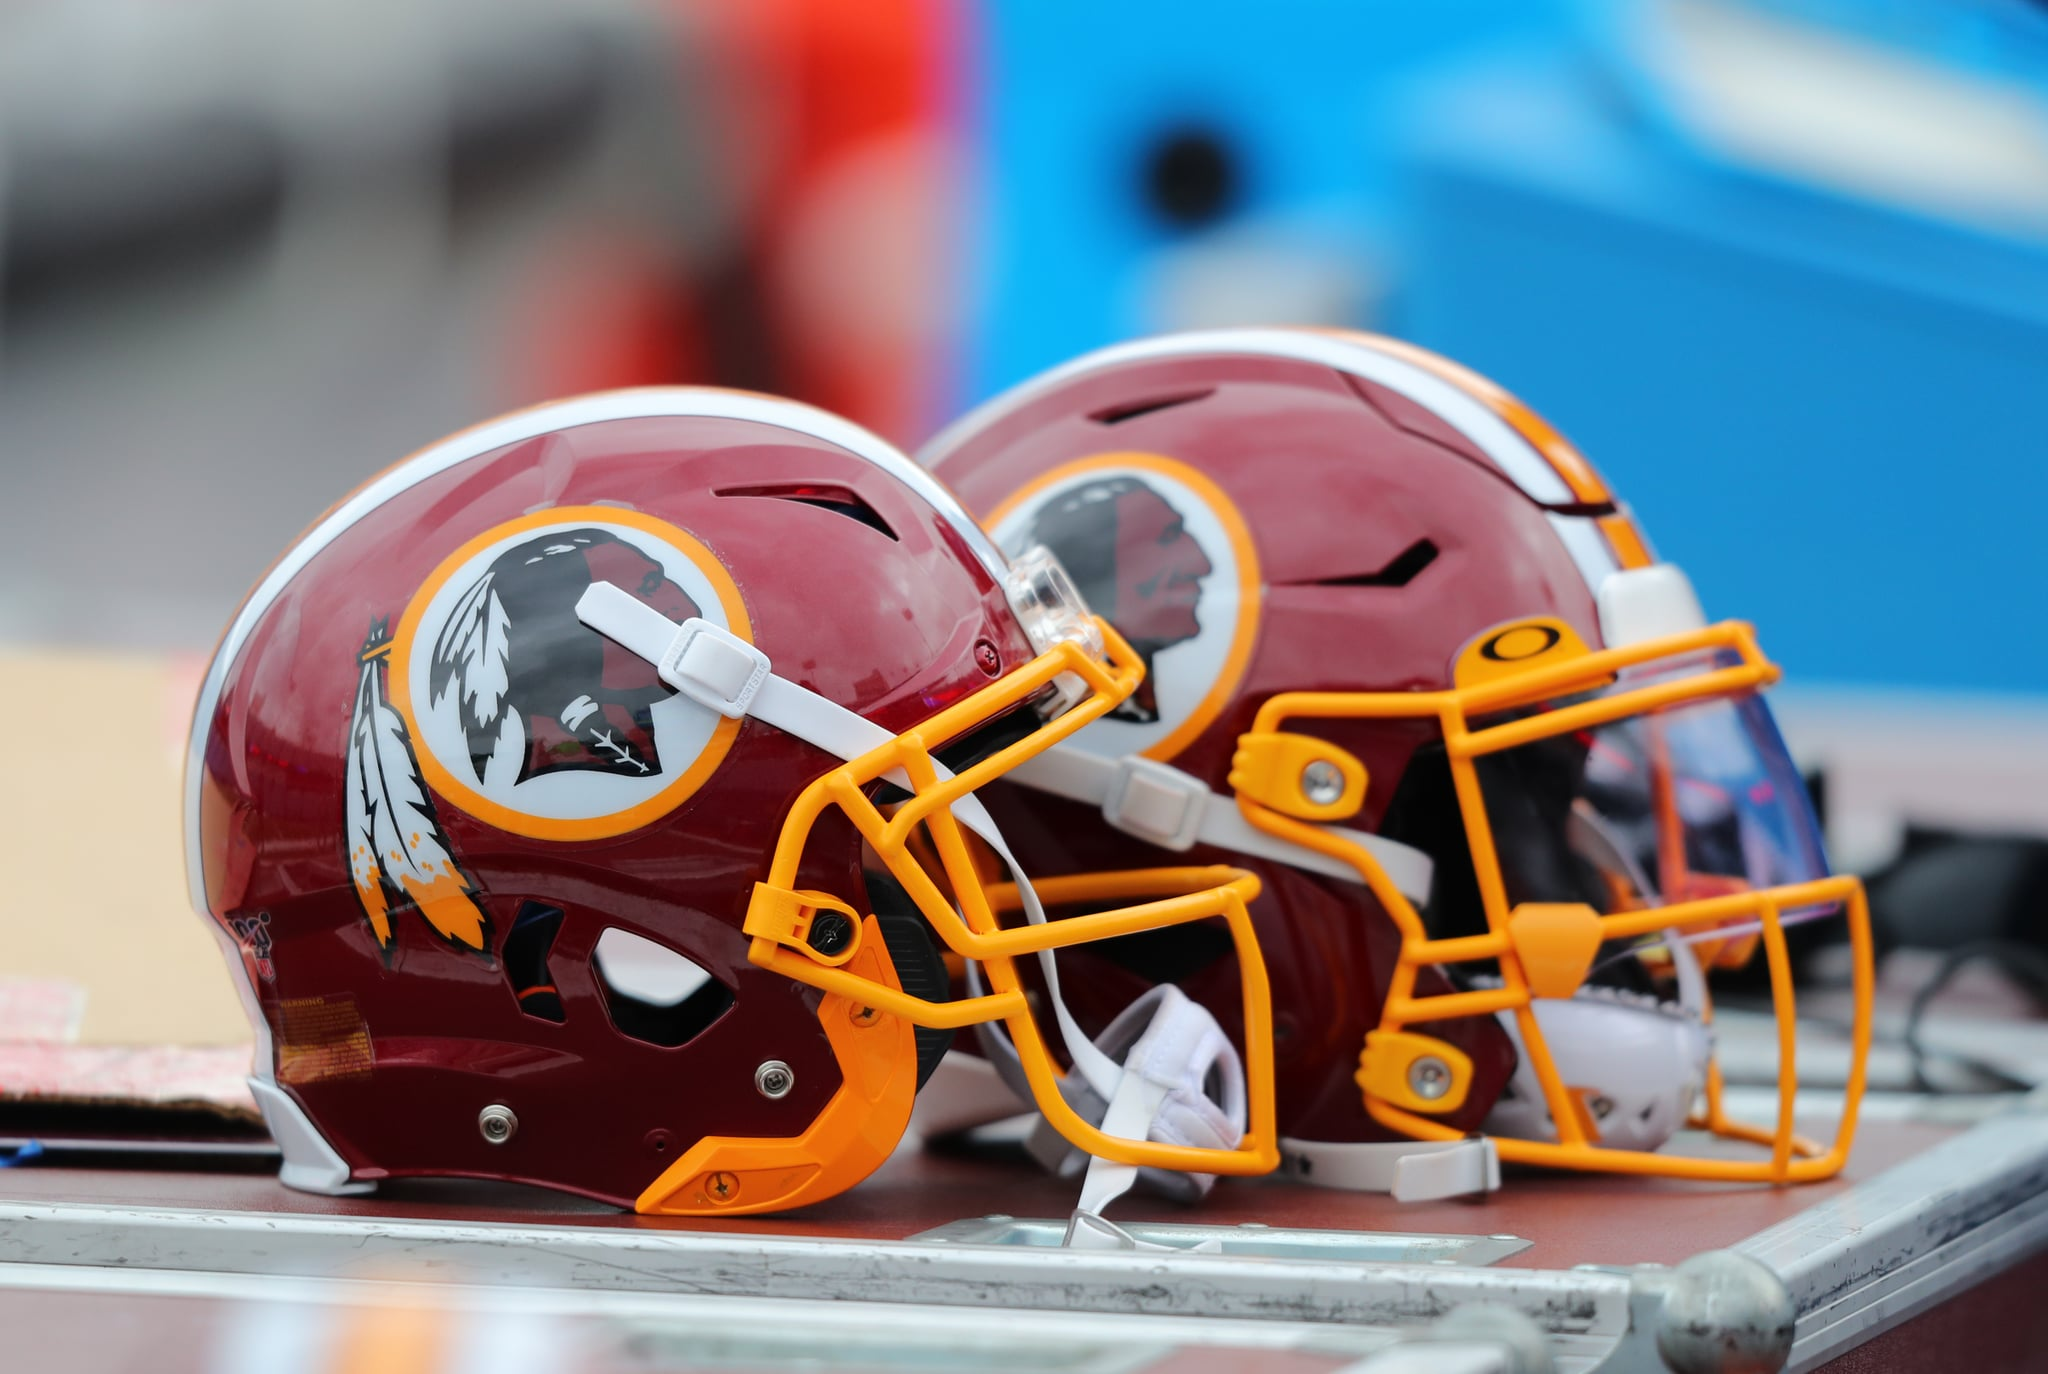 ORCHARD PARK, NY - NOVEMBER 03:  A general view of a Washington Redskins players helmet on the bench before a game against the Buffalo Bills at New Era Field on November 3, 2019 in Orchard Park, New York.  Buffalo beats Washington 24 to 9. (Photo by Timothy T Ludwig/Getty Images)